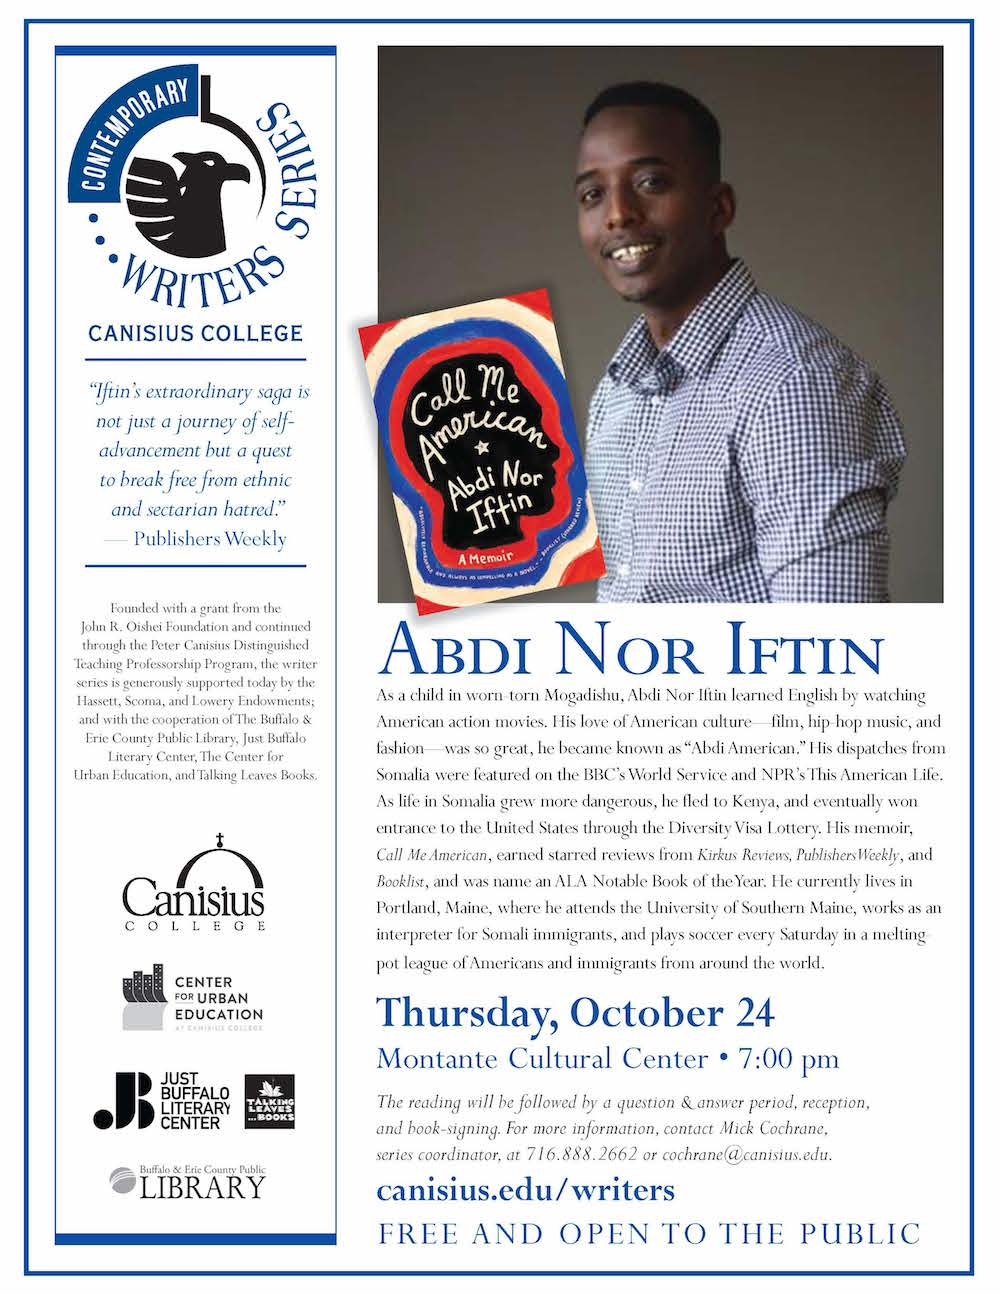 Abdi Nor Iftin: Canisius Contemporary Writer Series